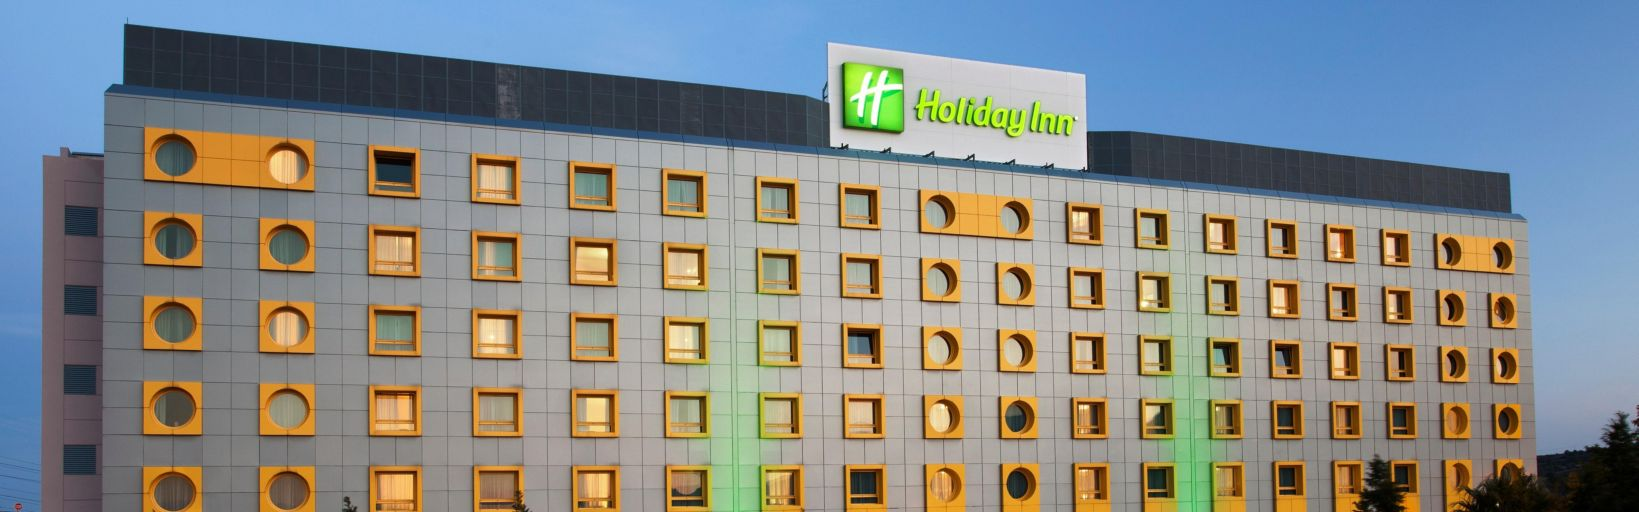 Hotel Exterior Lights On At Holiday Inn Athens Attica Av Airport W